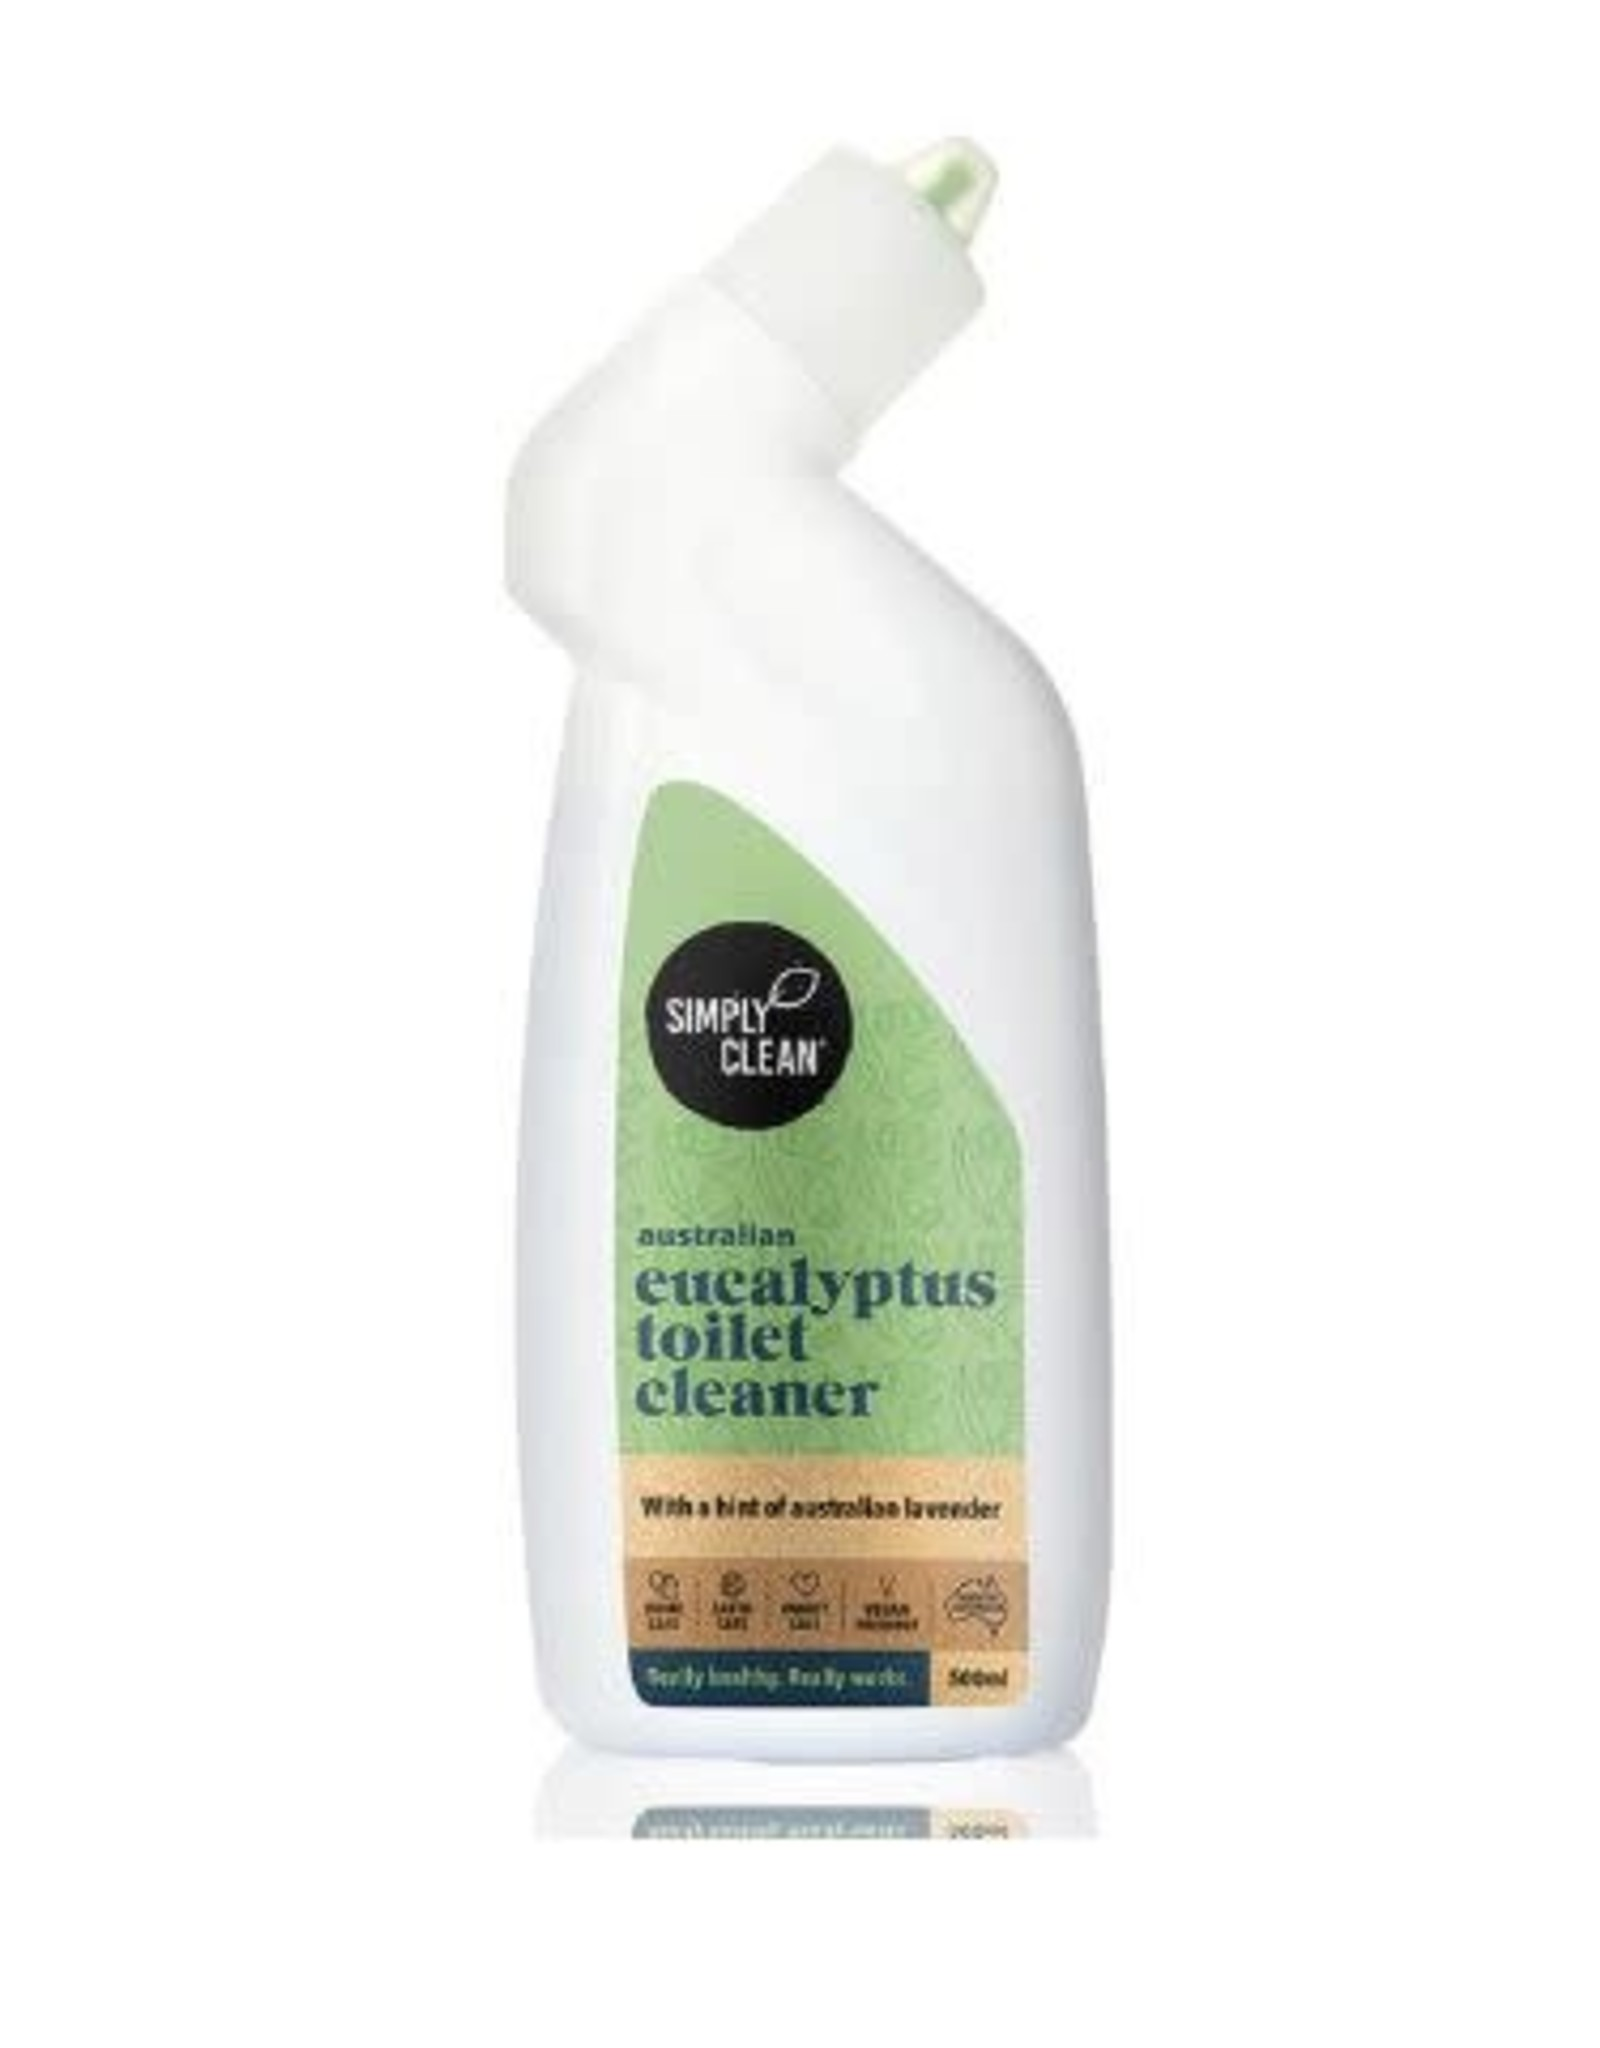 Simply Clean Australian Eucalyptus Toilet Cleaner